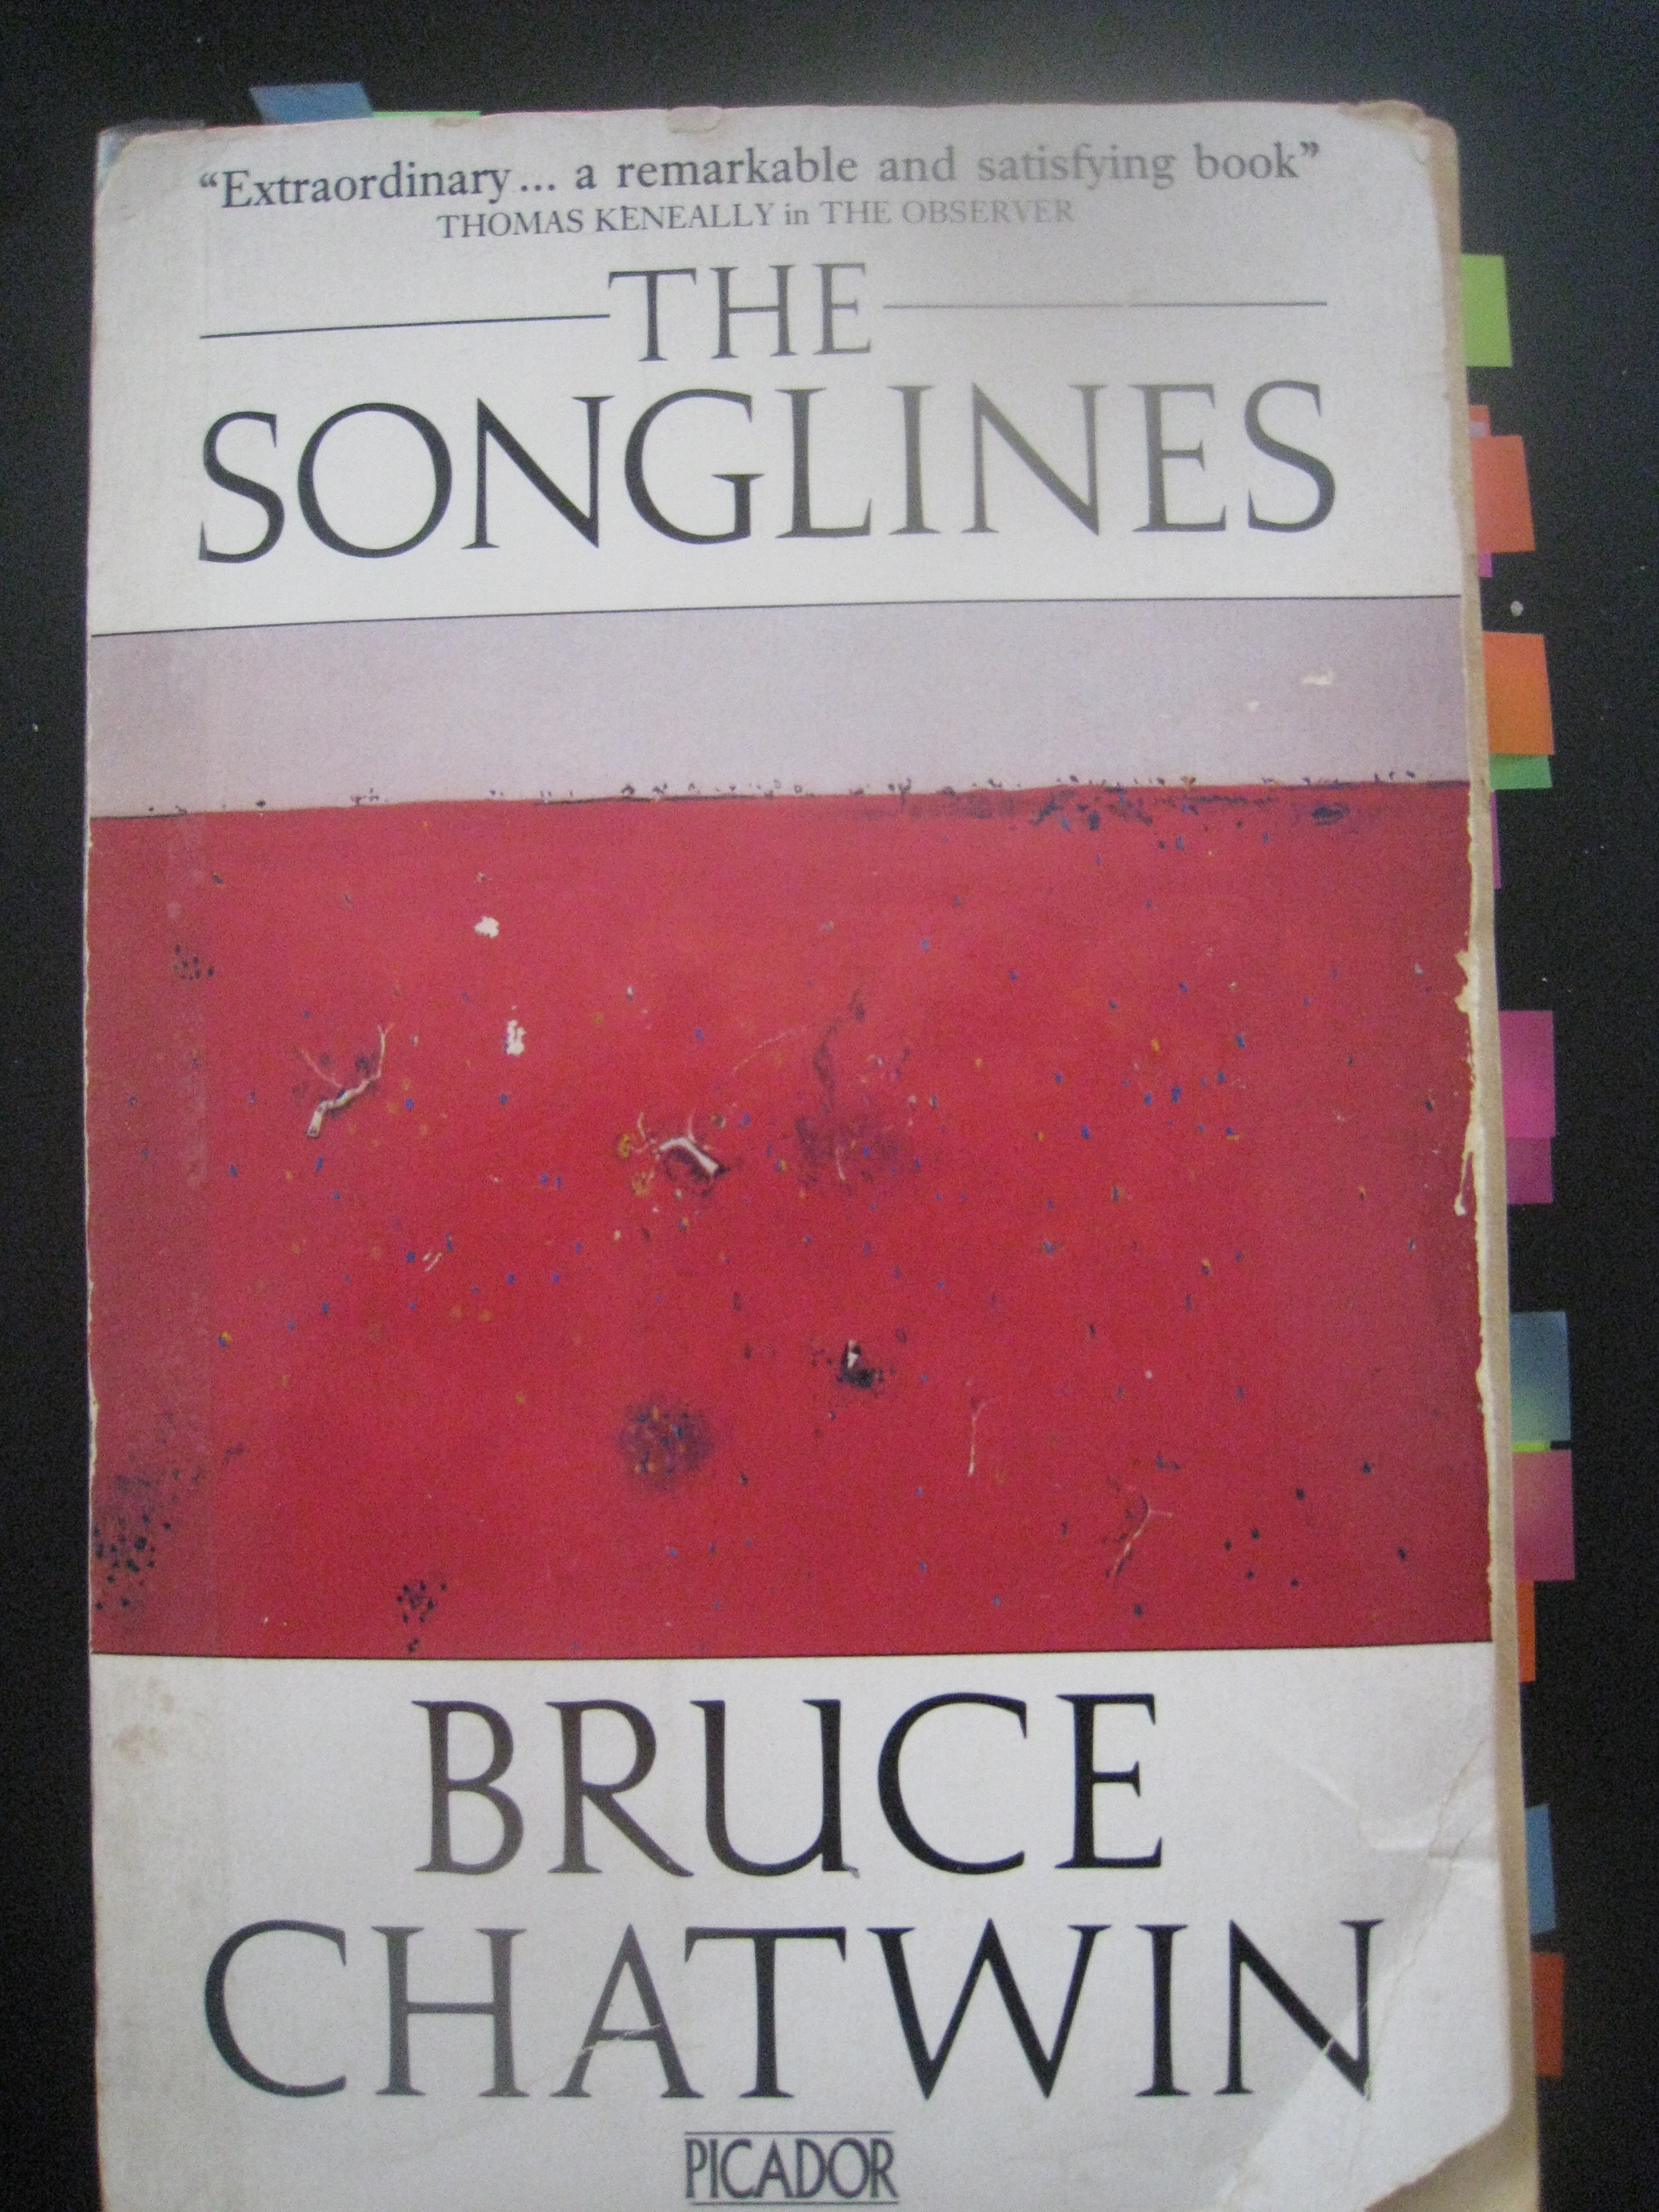 bruce chatwin songlines pdf